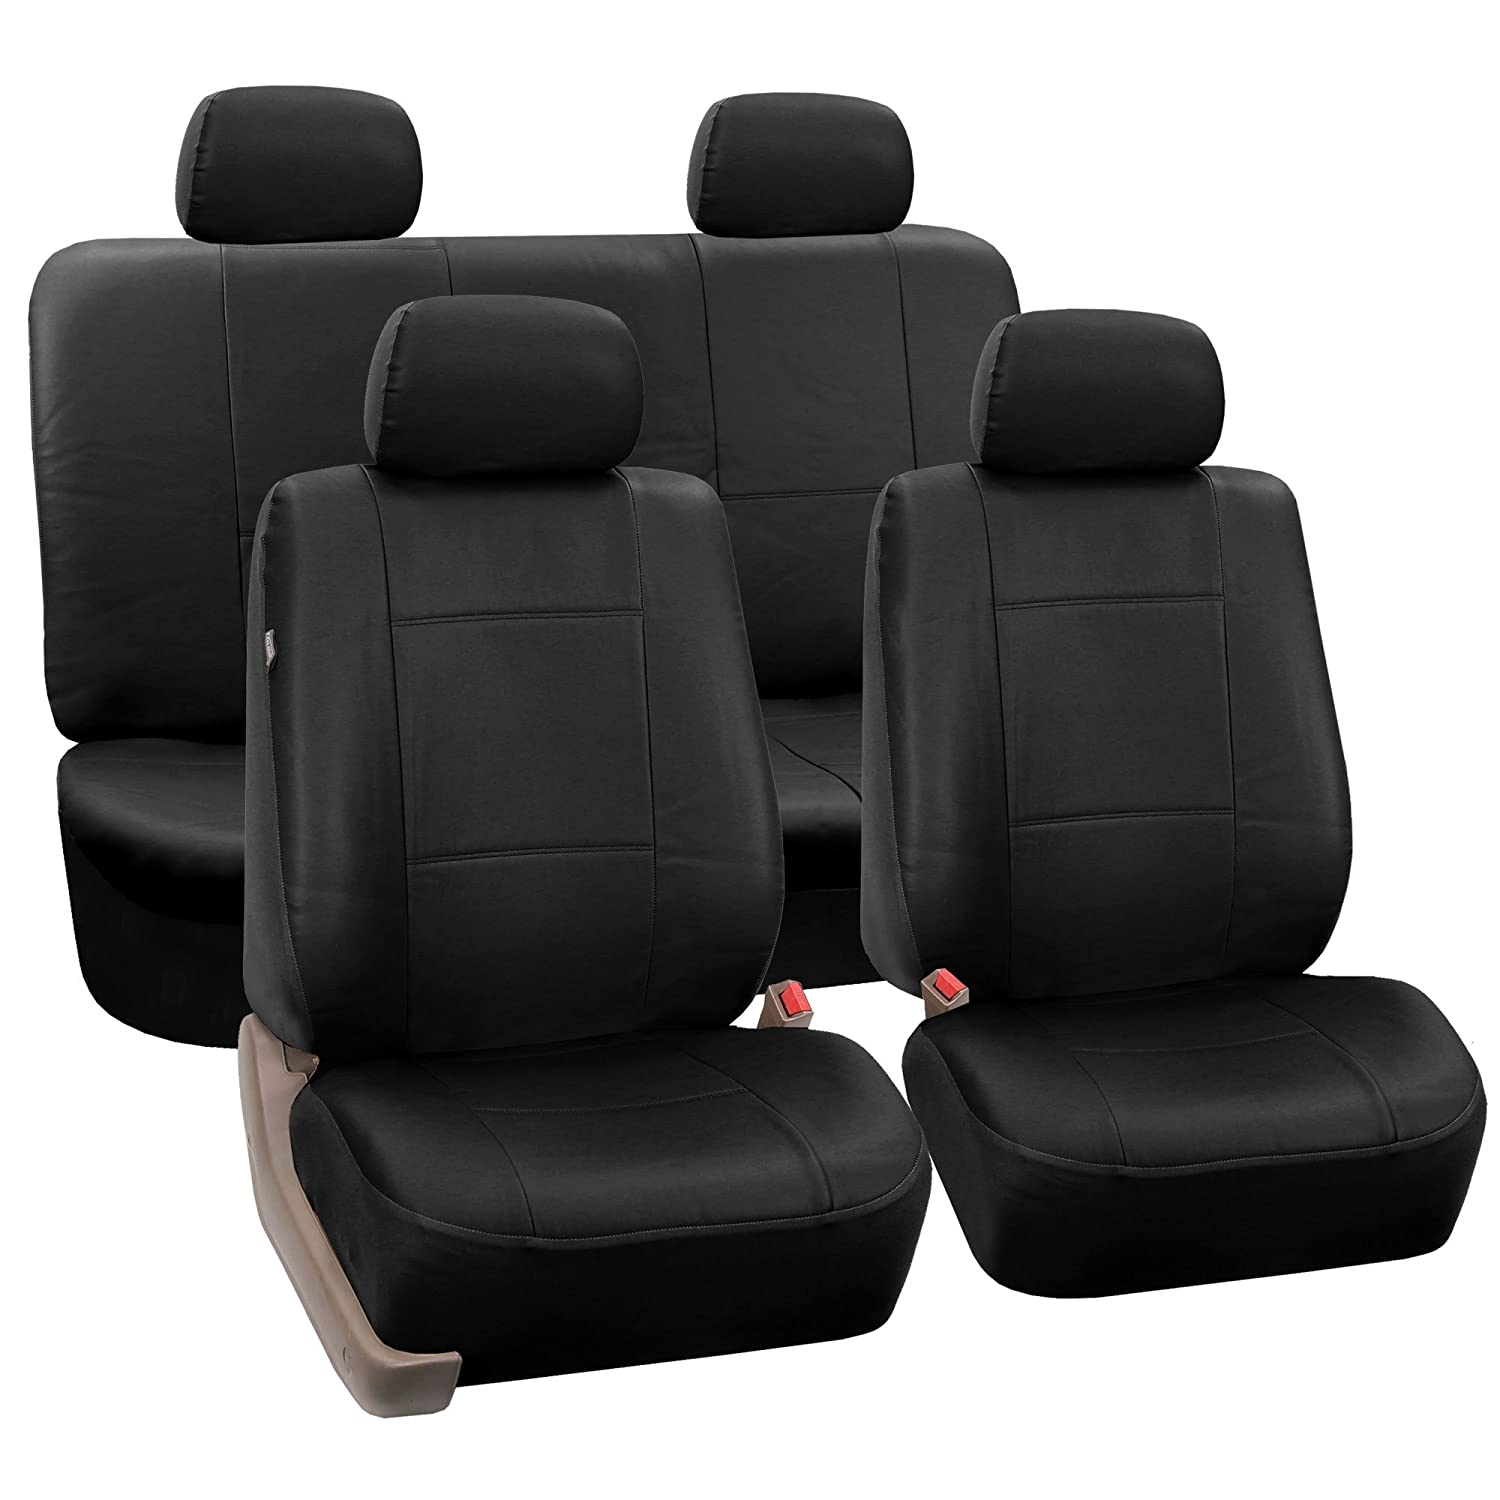 Amazon Com Fh Pu001 Pu Leather Car Seat Covers Solid Black Color